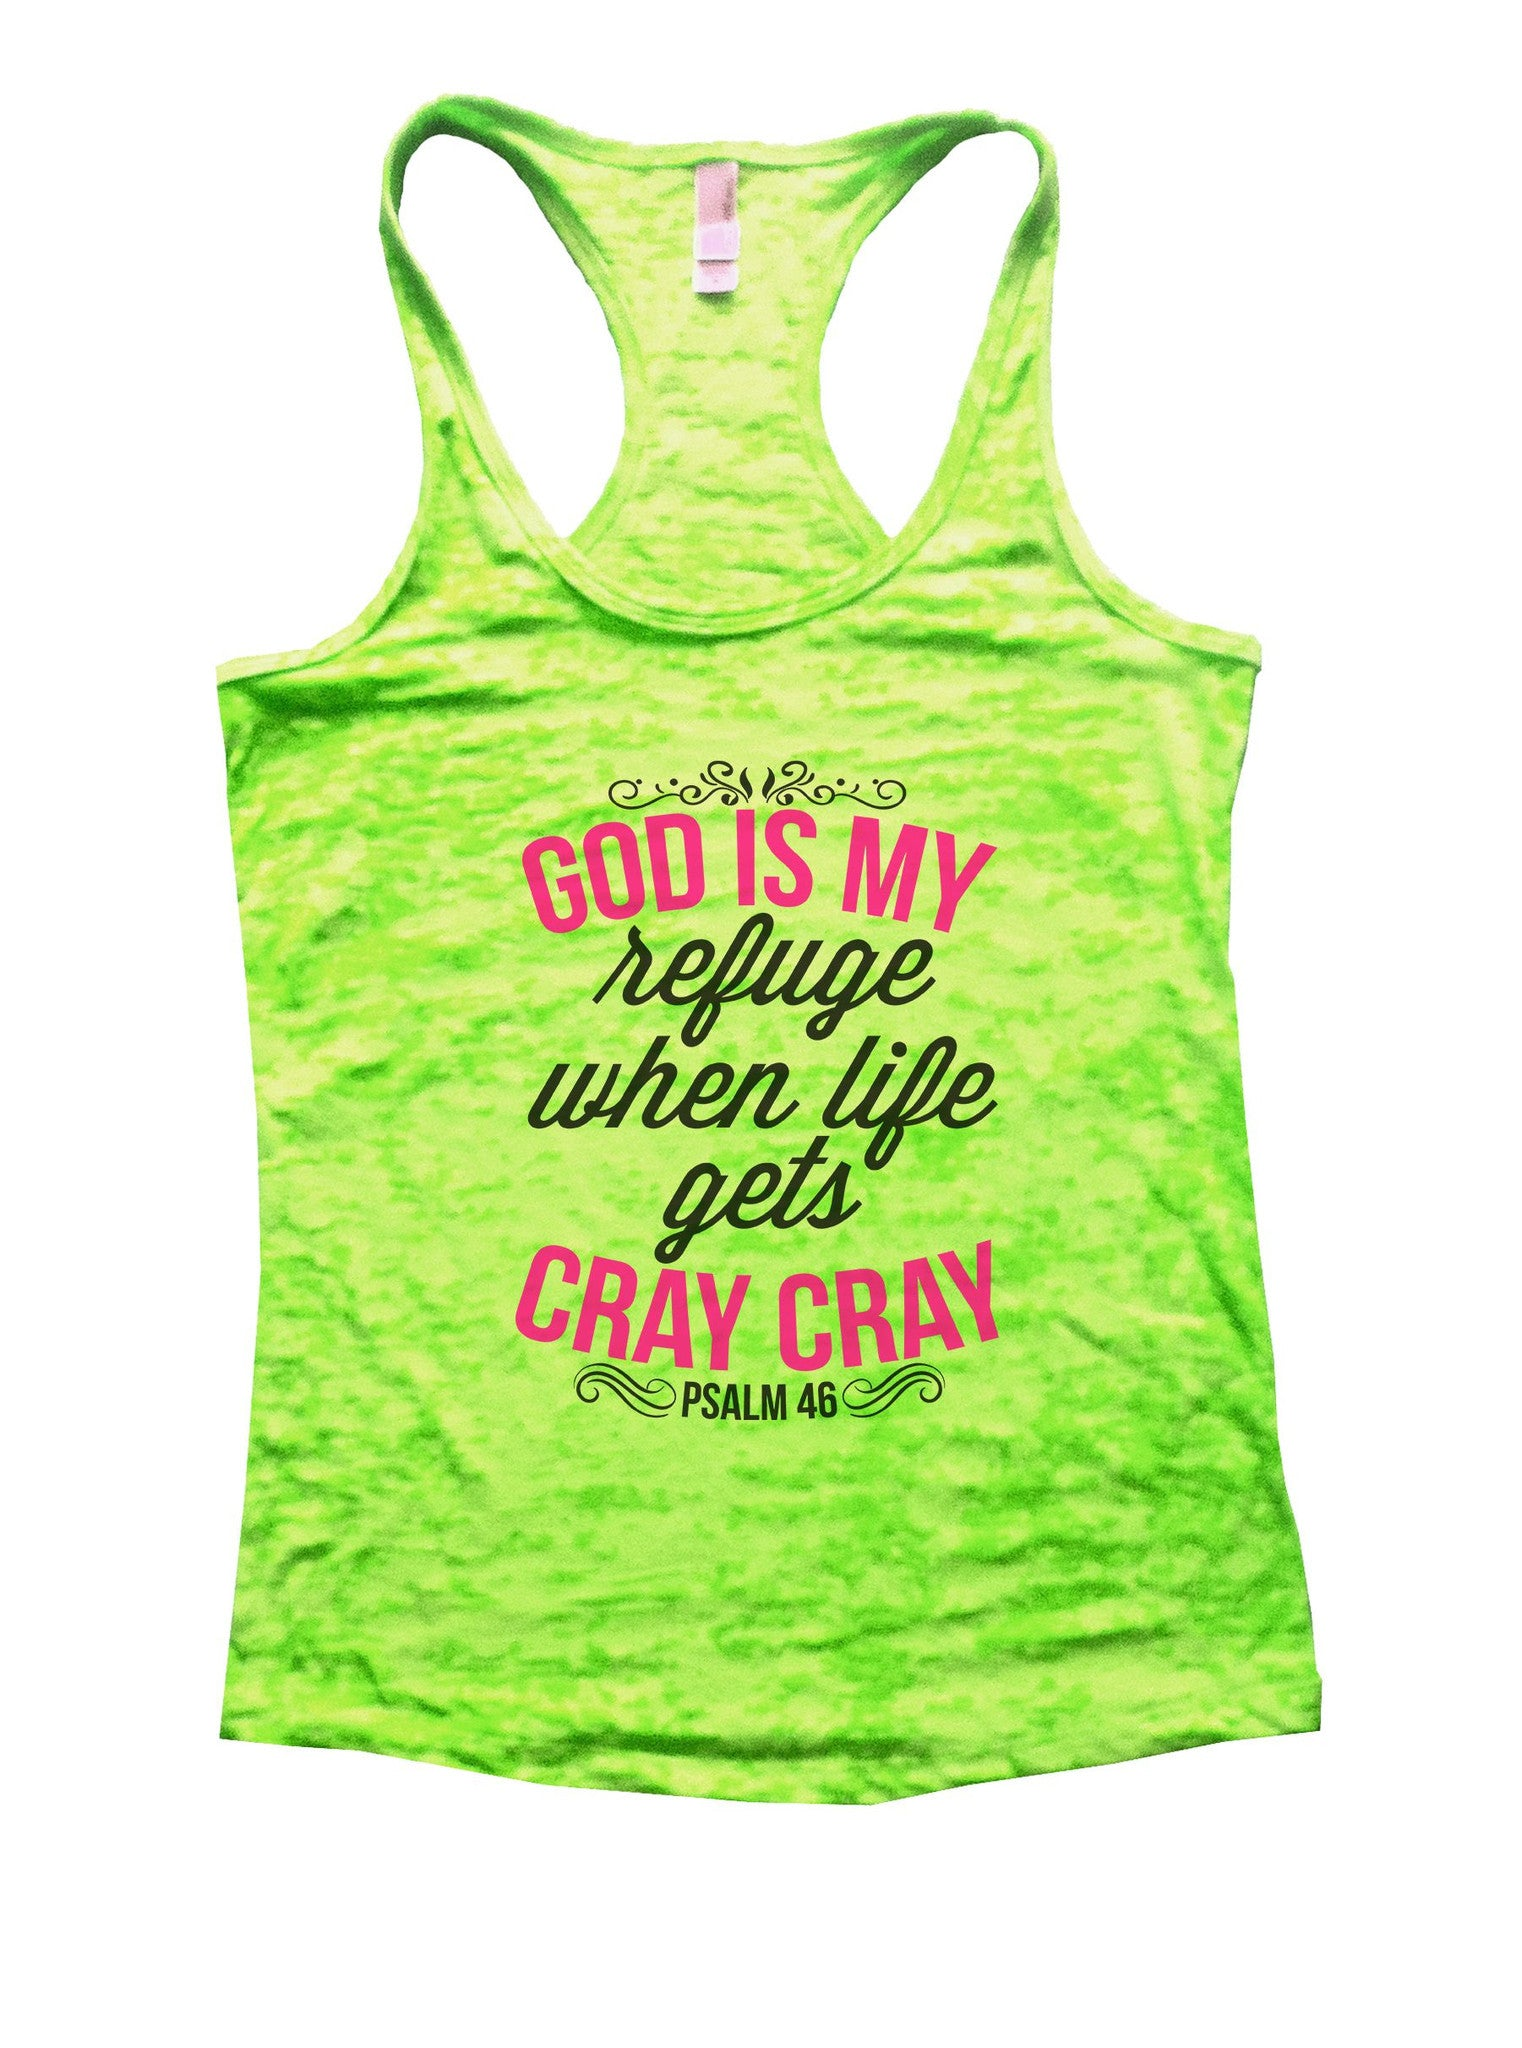 God Is My Refuge When Life Gets Cray Cray Psalm 46 Burnout Tank Top By BurnoutTankTops.com - 1129 - Funny Shirts Tank Tops Burnouts and Triblends  - 2